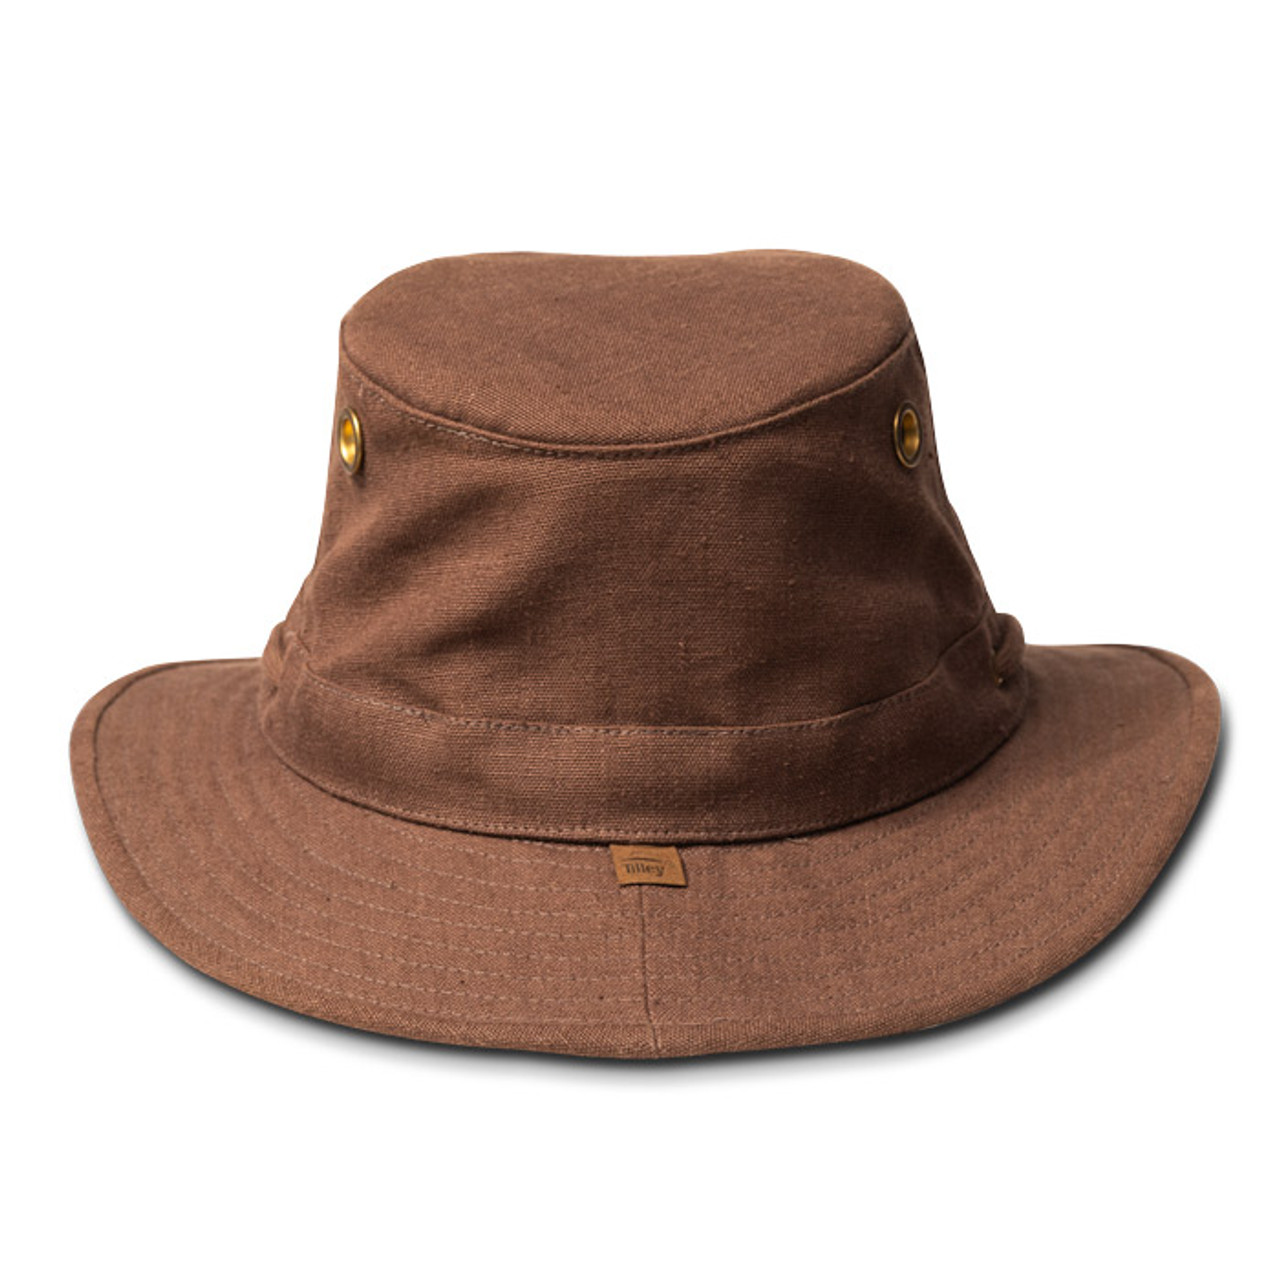 Various Sizes and Colors Tilley TH5 Hemp Hat